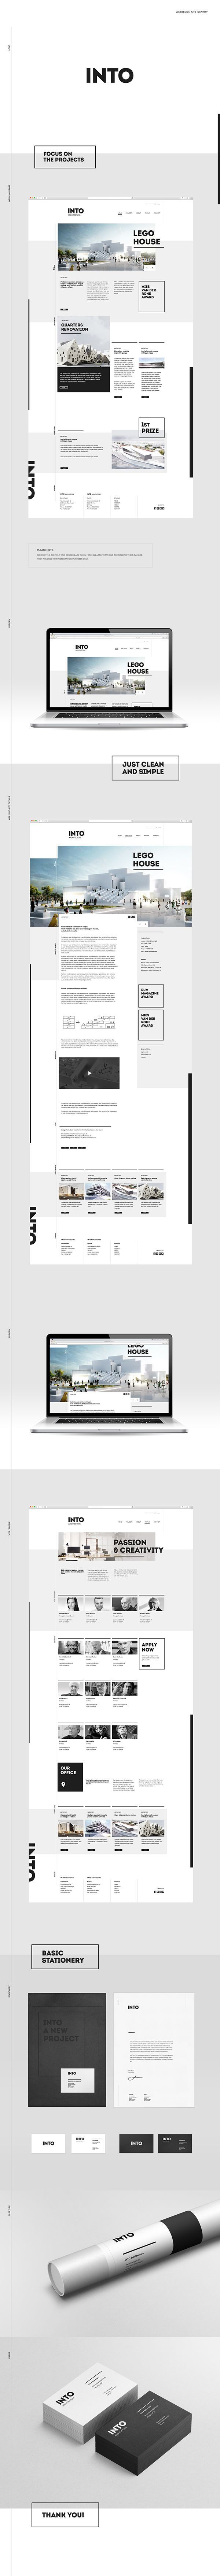 INTO | architecture office concept on Web Design Served More